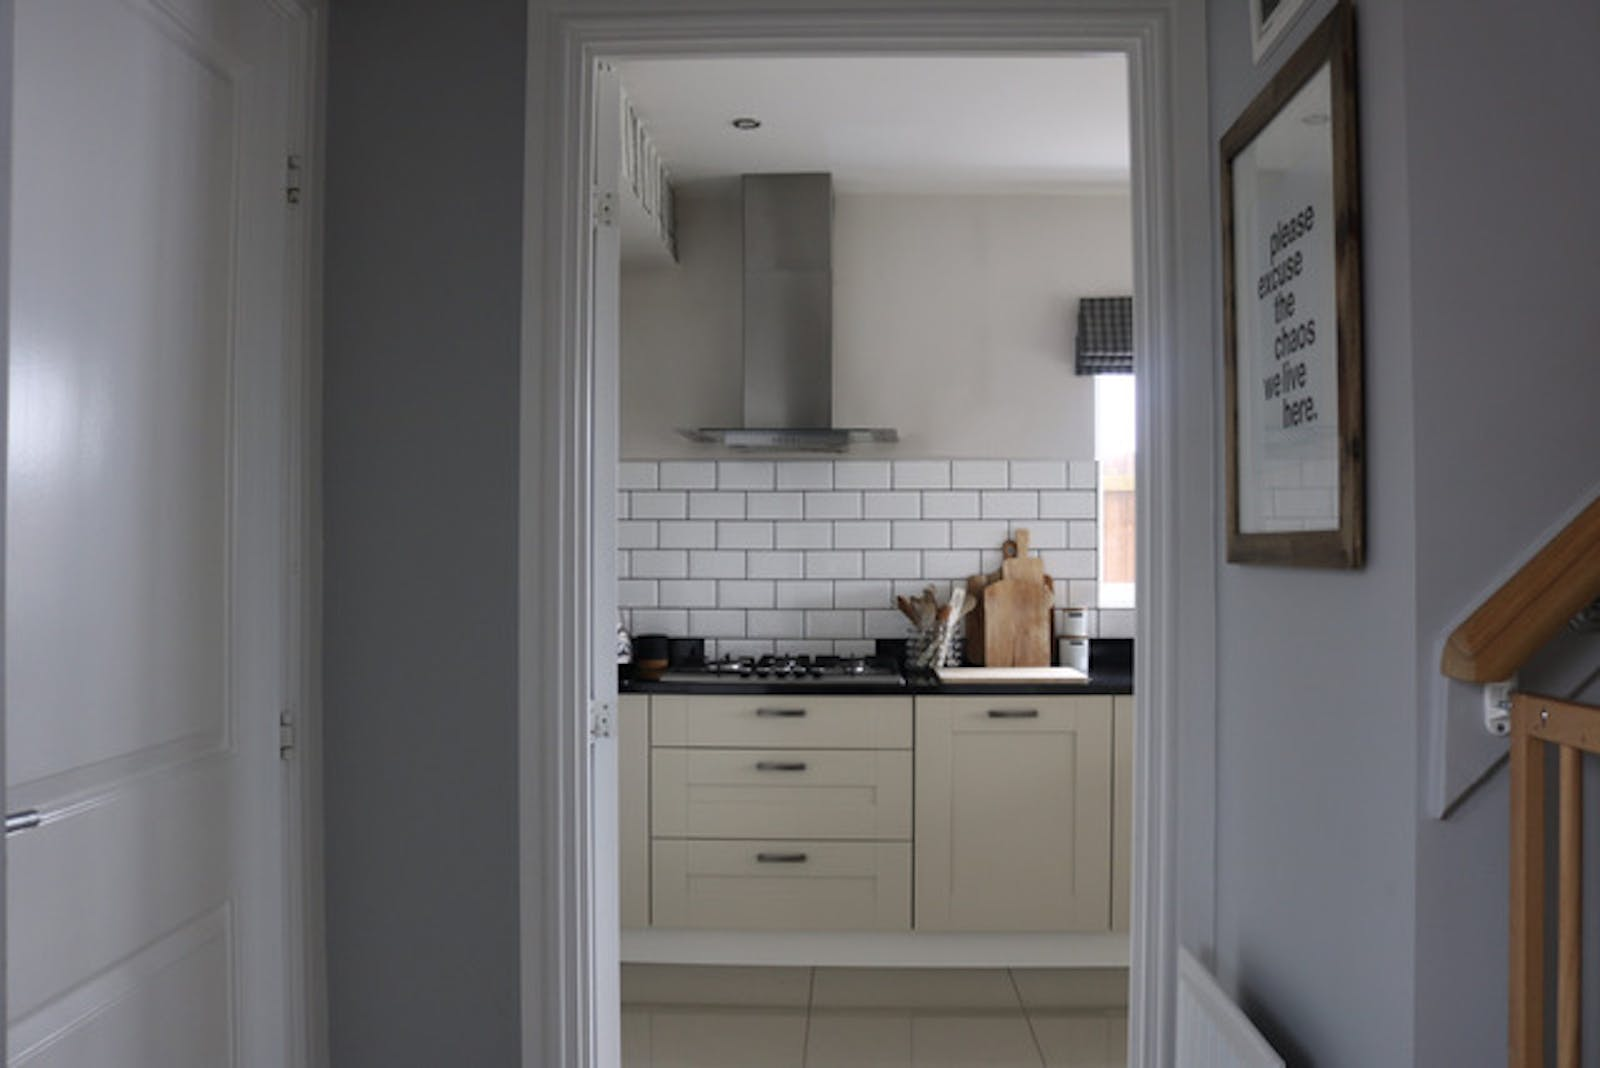 A view of a brightly coloured kitchen through a doorframe